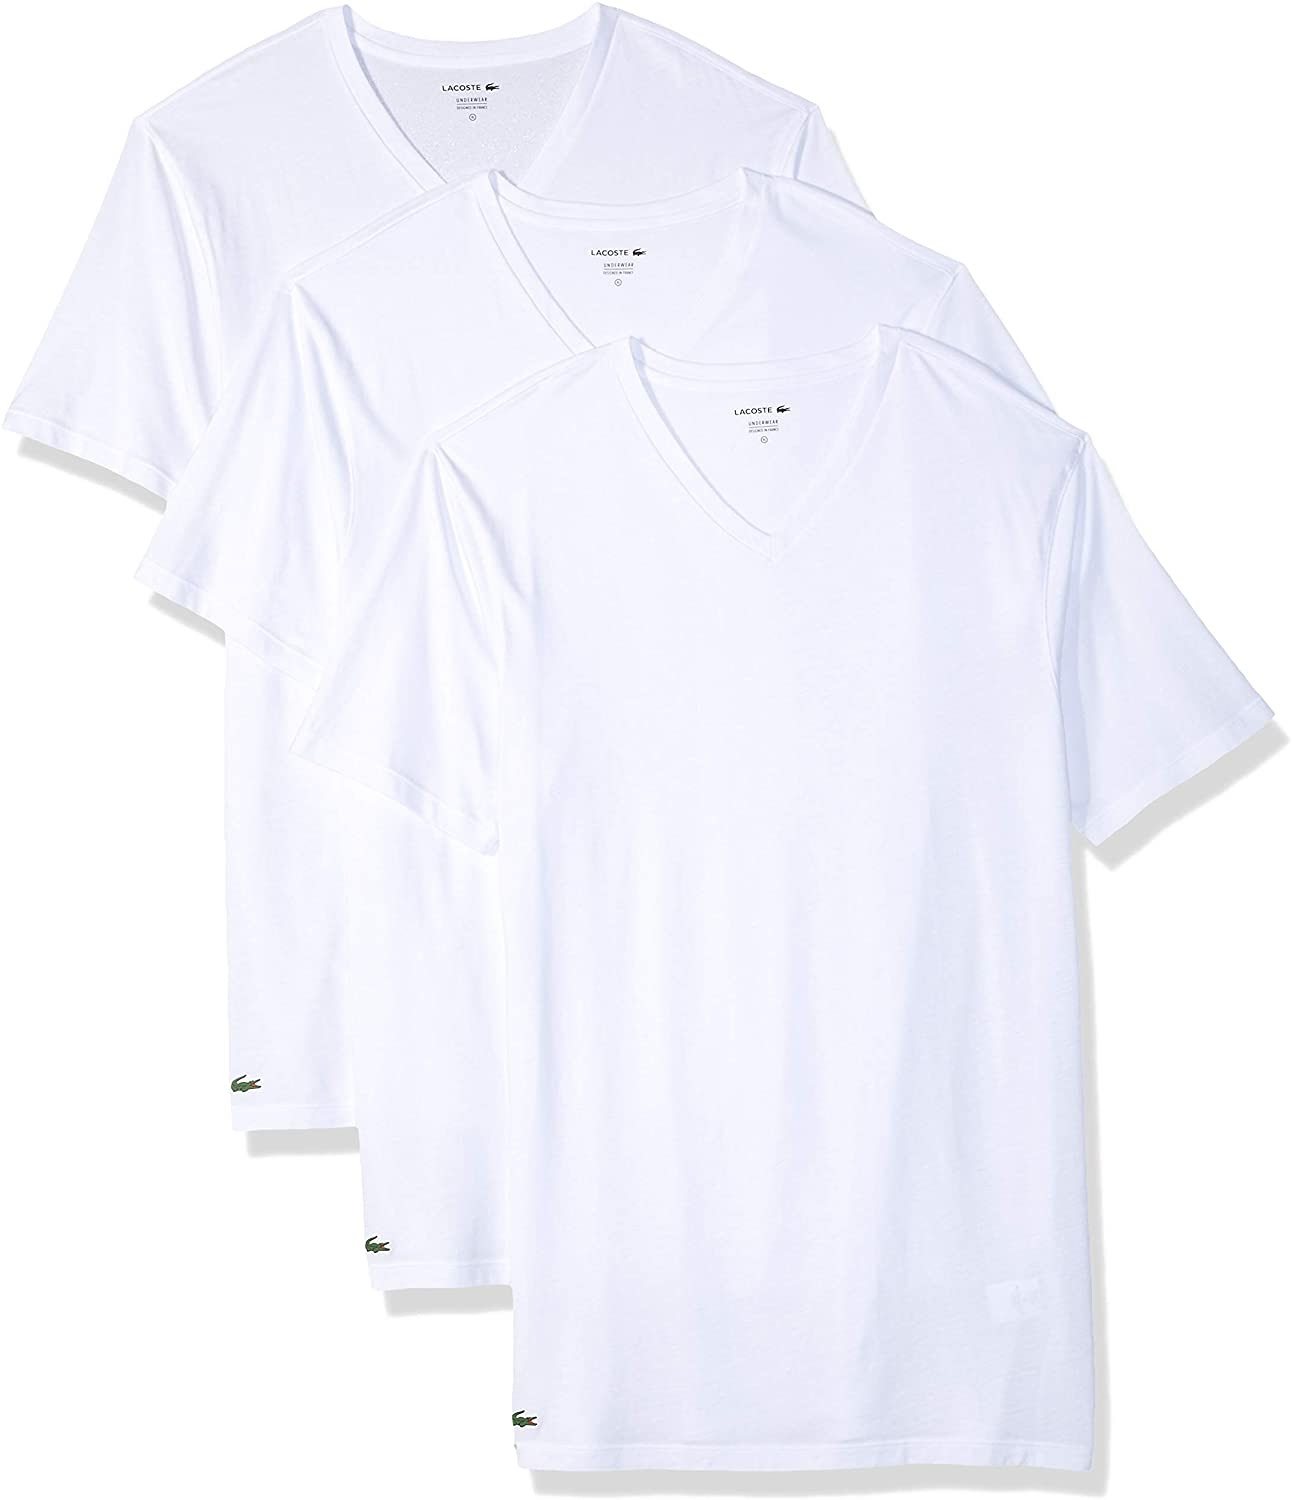 Lacoste 100% Cotton V Neck T-Shirt